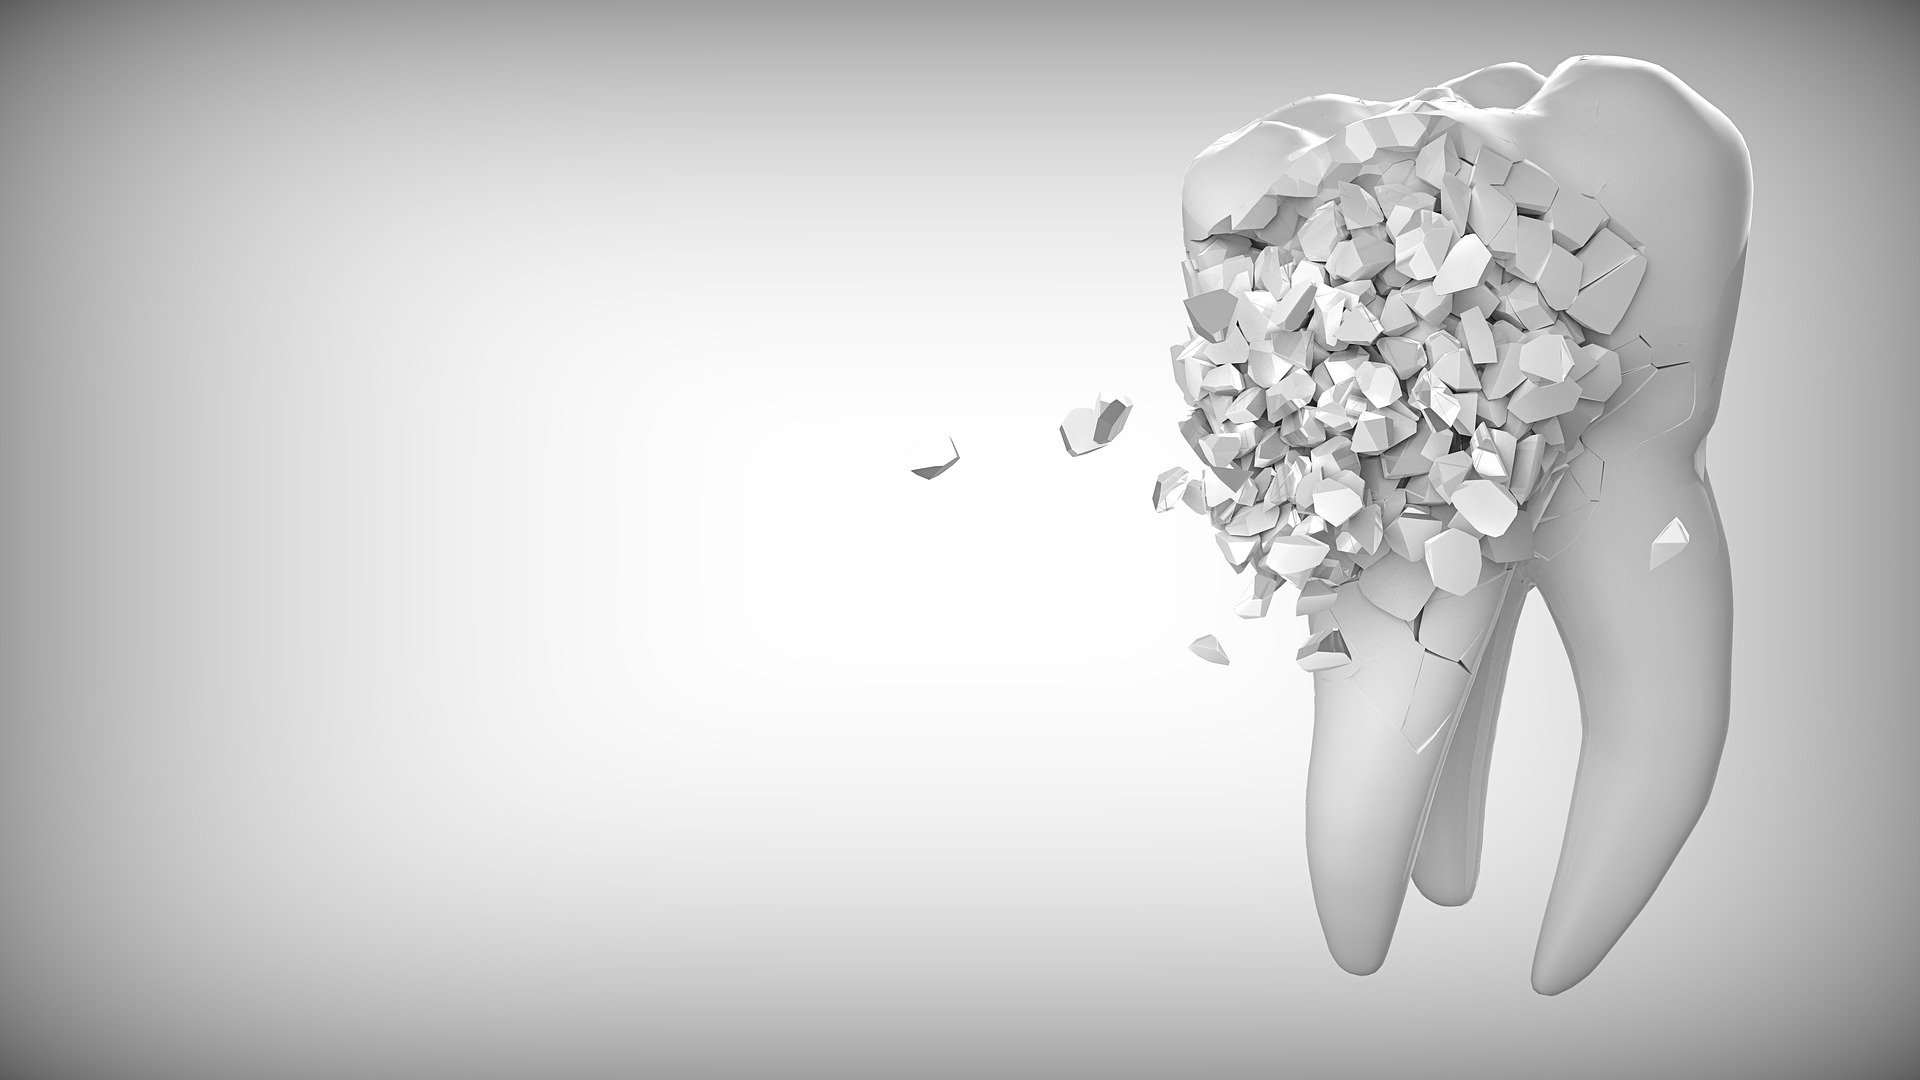 Image of Fragmented Tooth